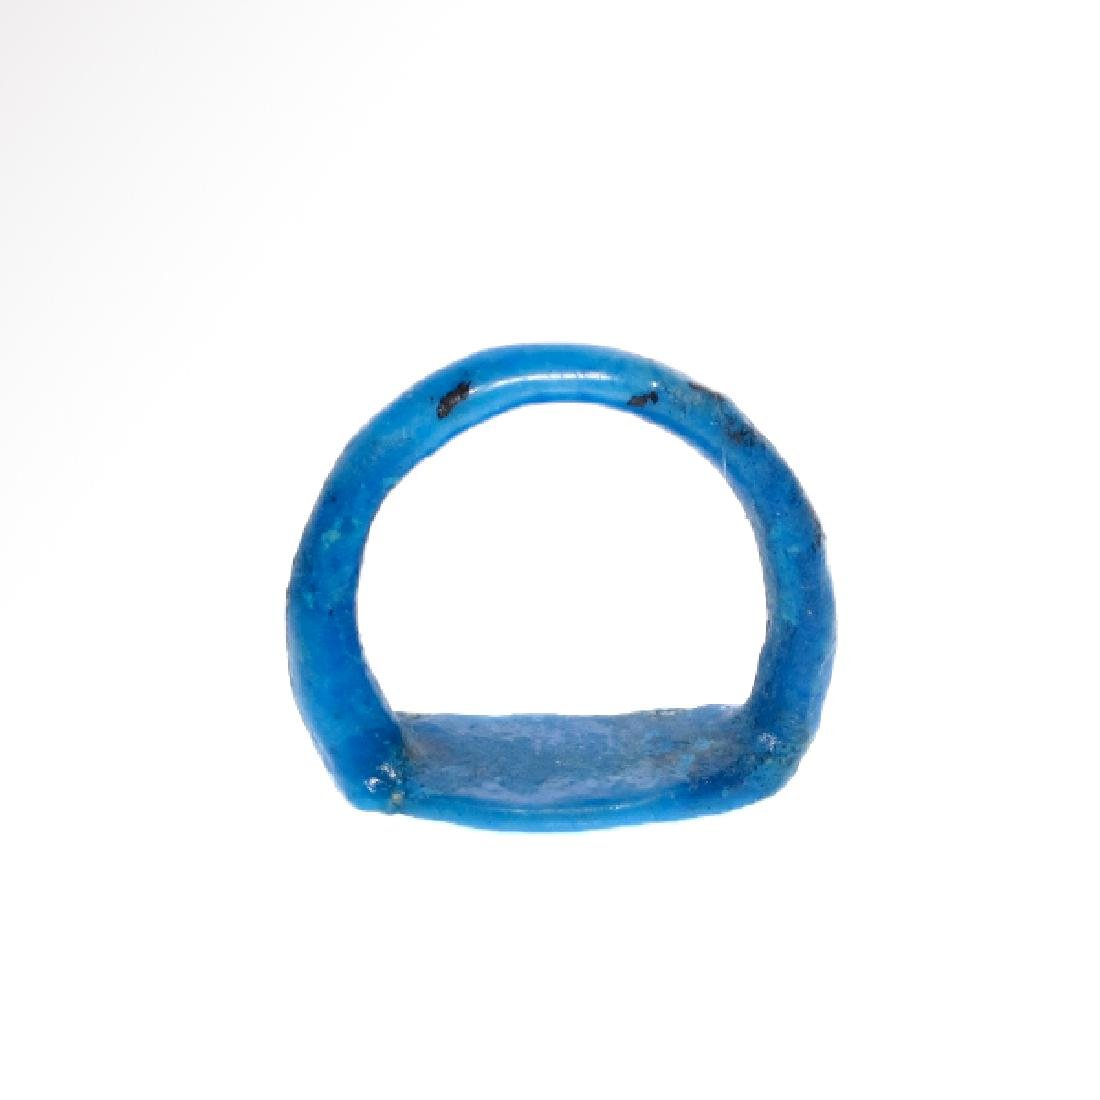 Egyptian Faience Ring with Lotus Flower, Amarna Period, - 6